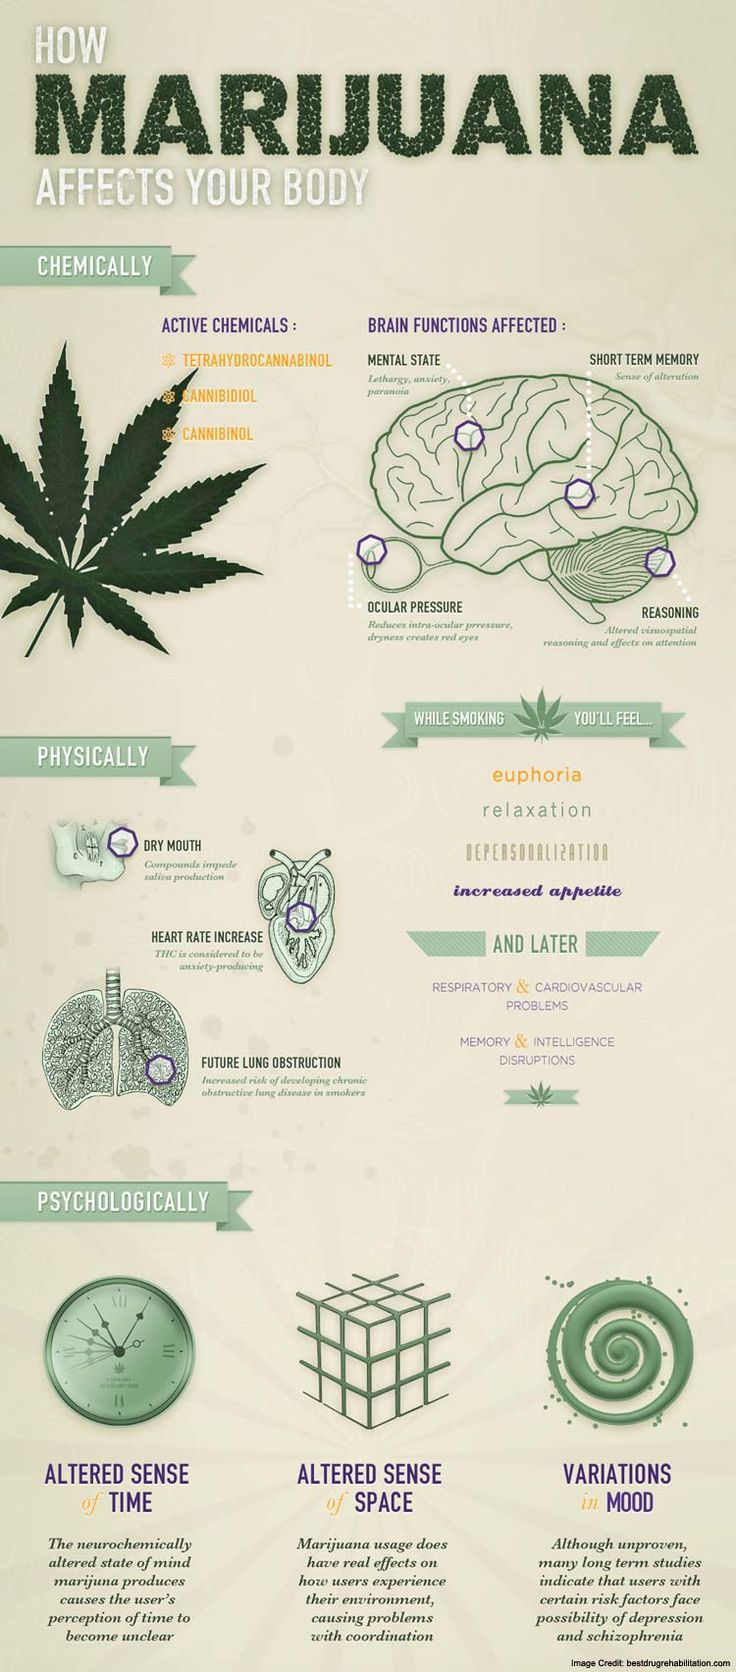 the effects of medical marijuana fina This complete guide to the effects of recreational and medical marijuana explores how marijuana makes you feel, how it interacts with the body, and any side effects.